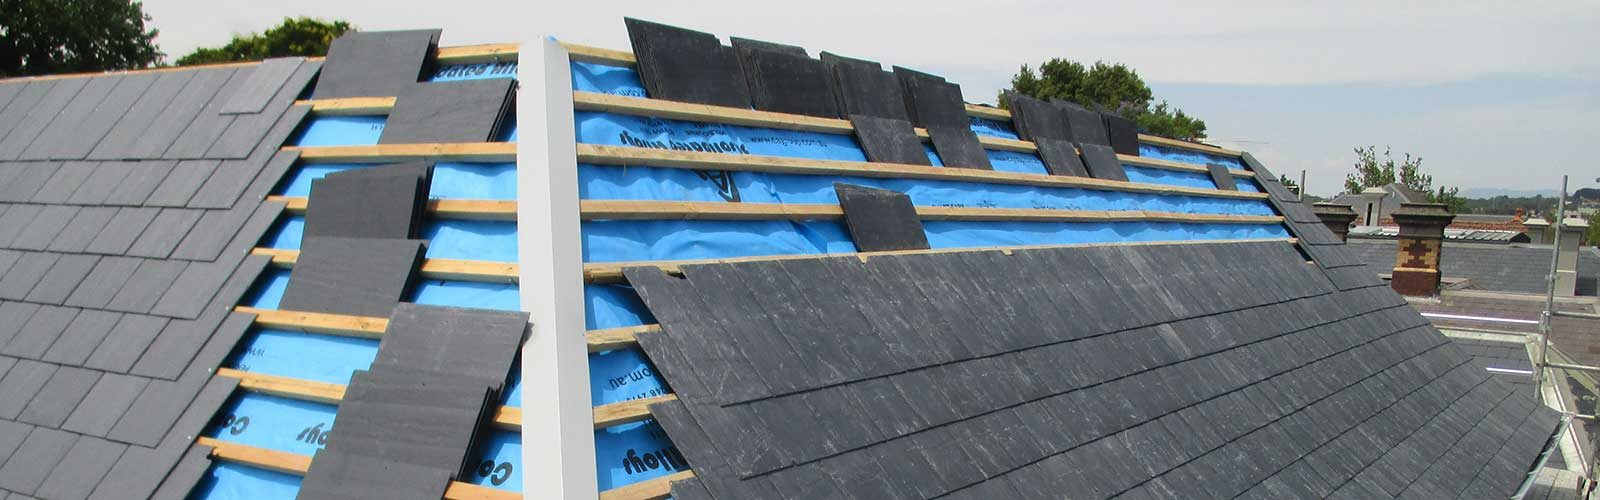 Slate roofing on new construction project